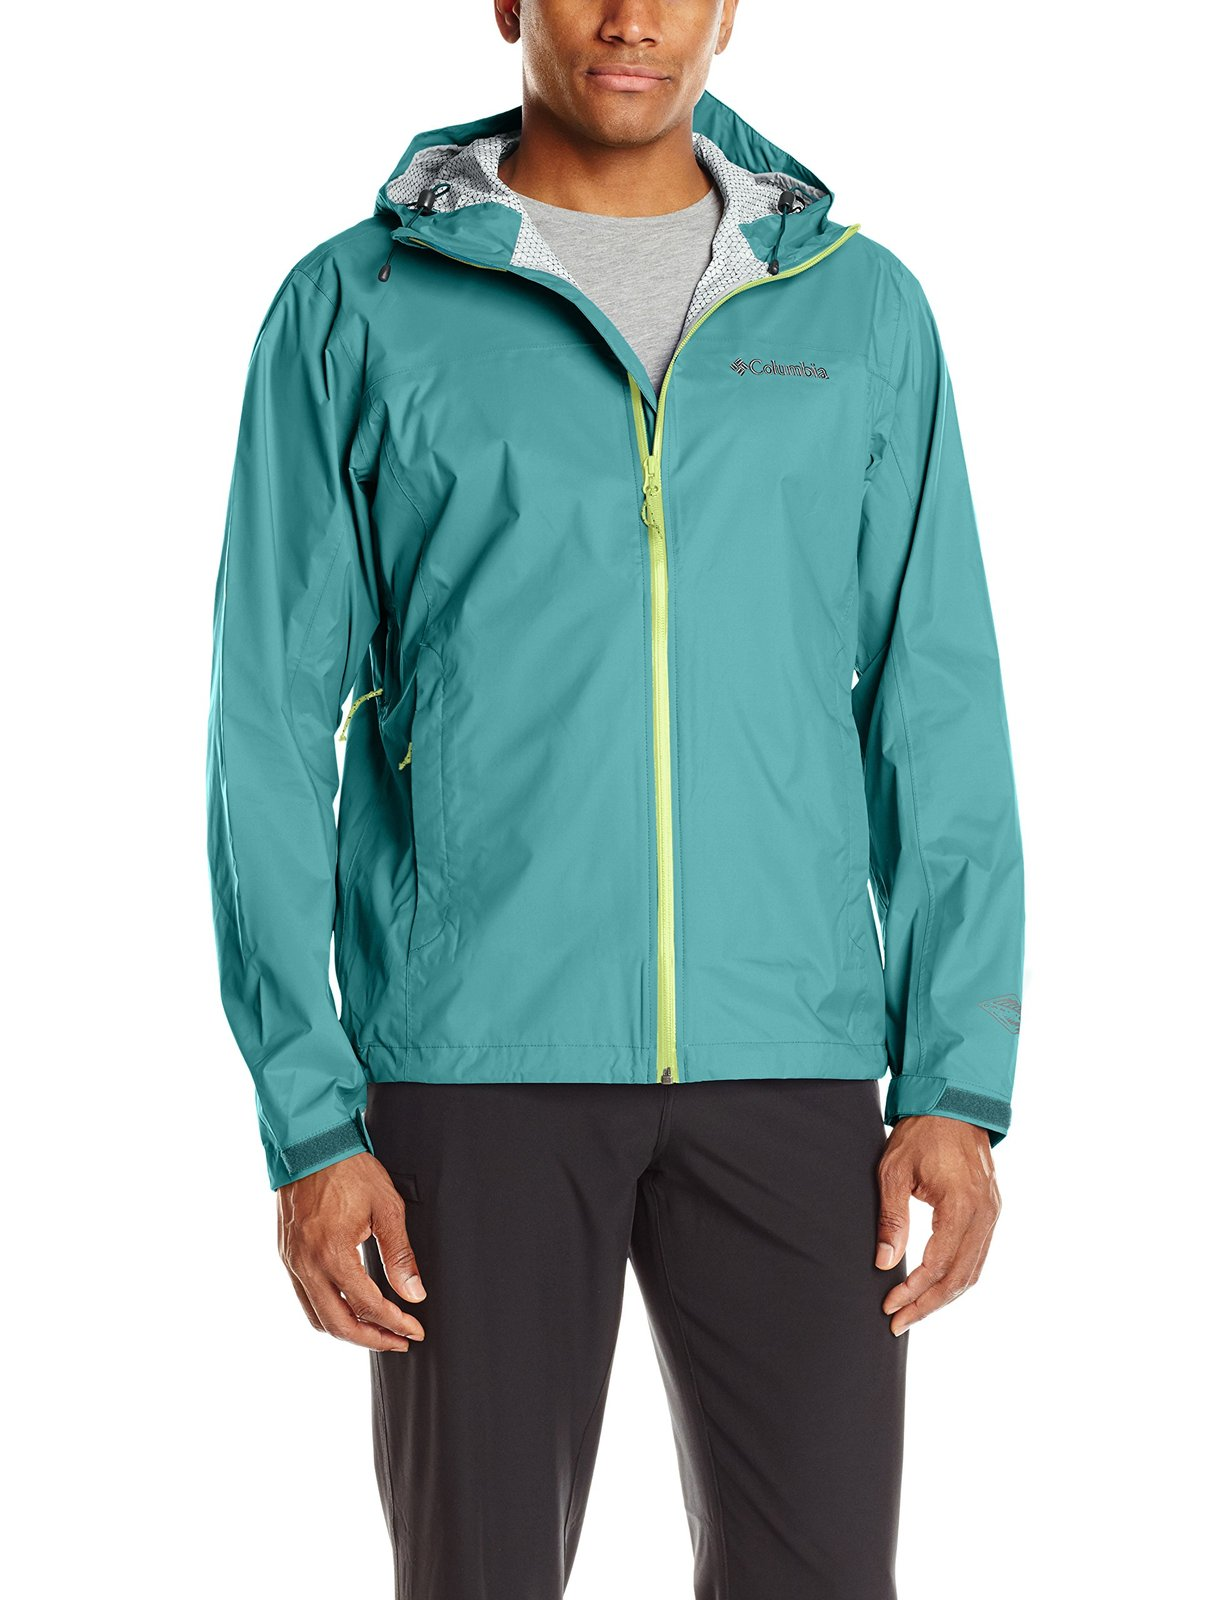 Columbia Men's Evapouration Jacket, Teal, Small